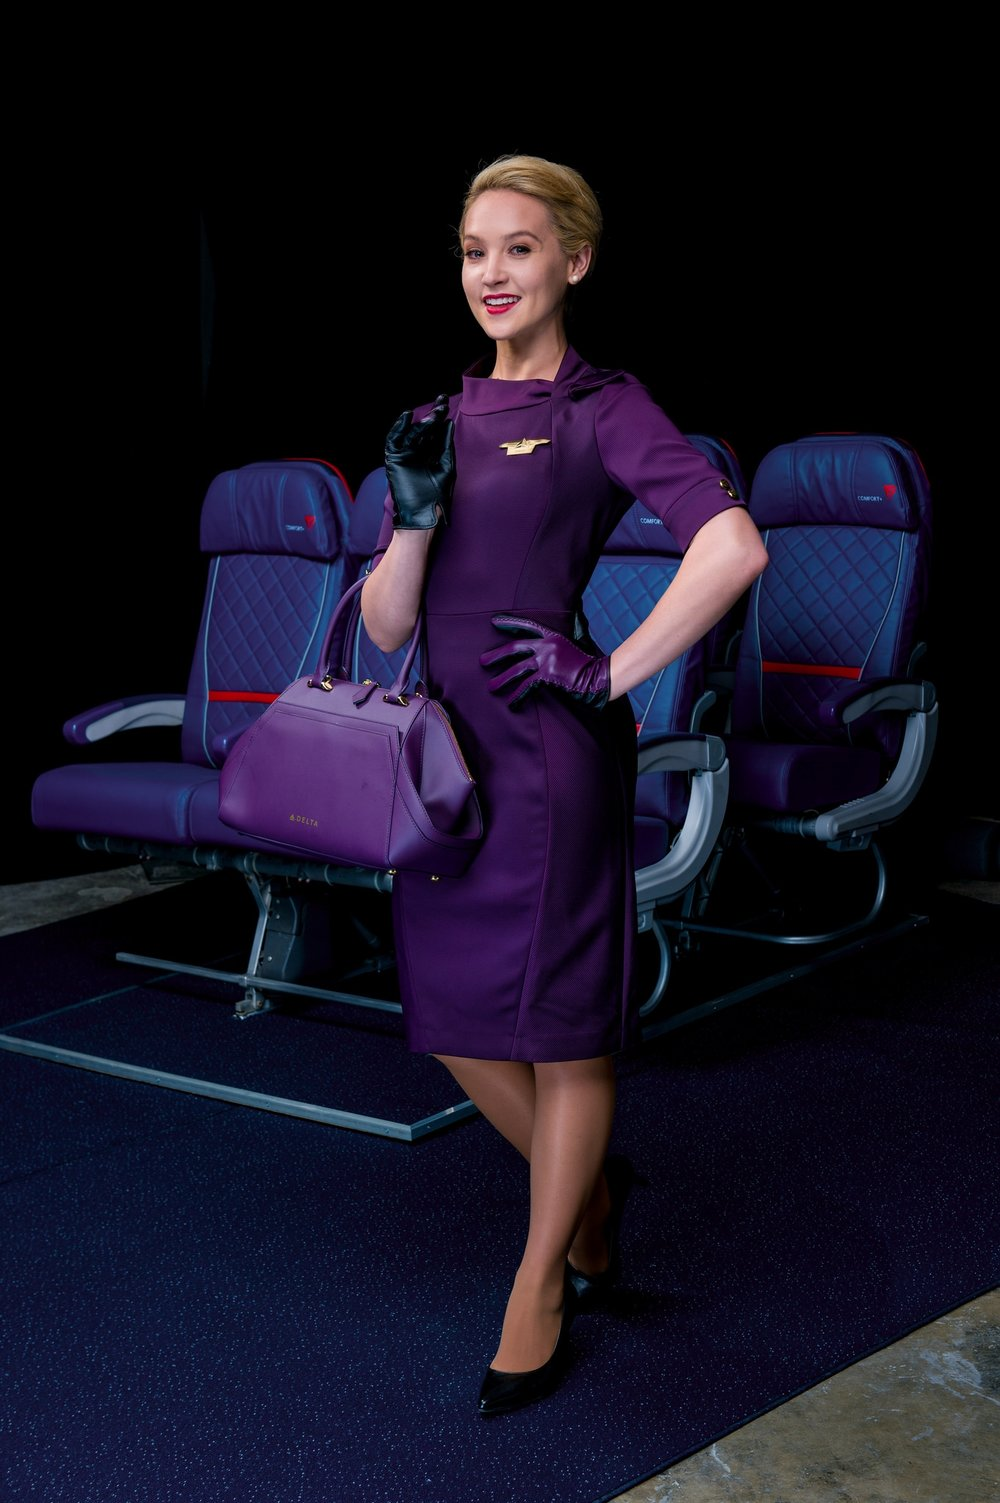 Female in-flight uniform